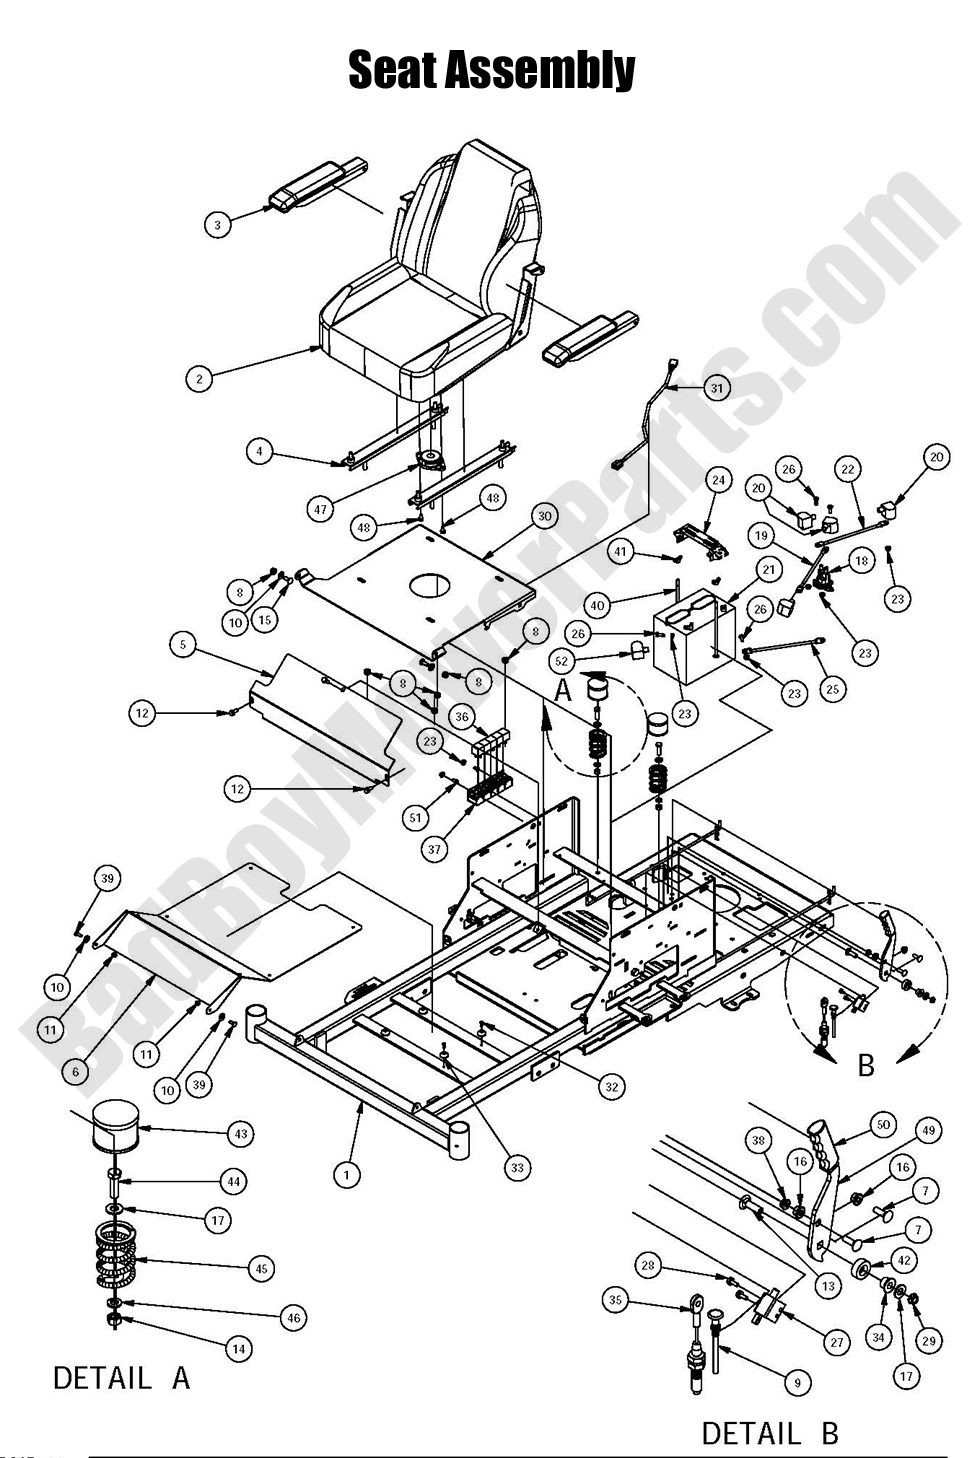 bad boy mowers wiring diagram    bad       boy       mower    parts 2016 zt elite seat assembly    diagram        bad       boy       mower    parts 2016 zt elite seat assembly    diagram